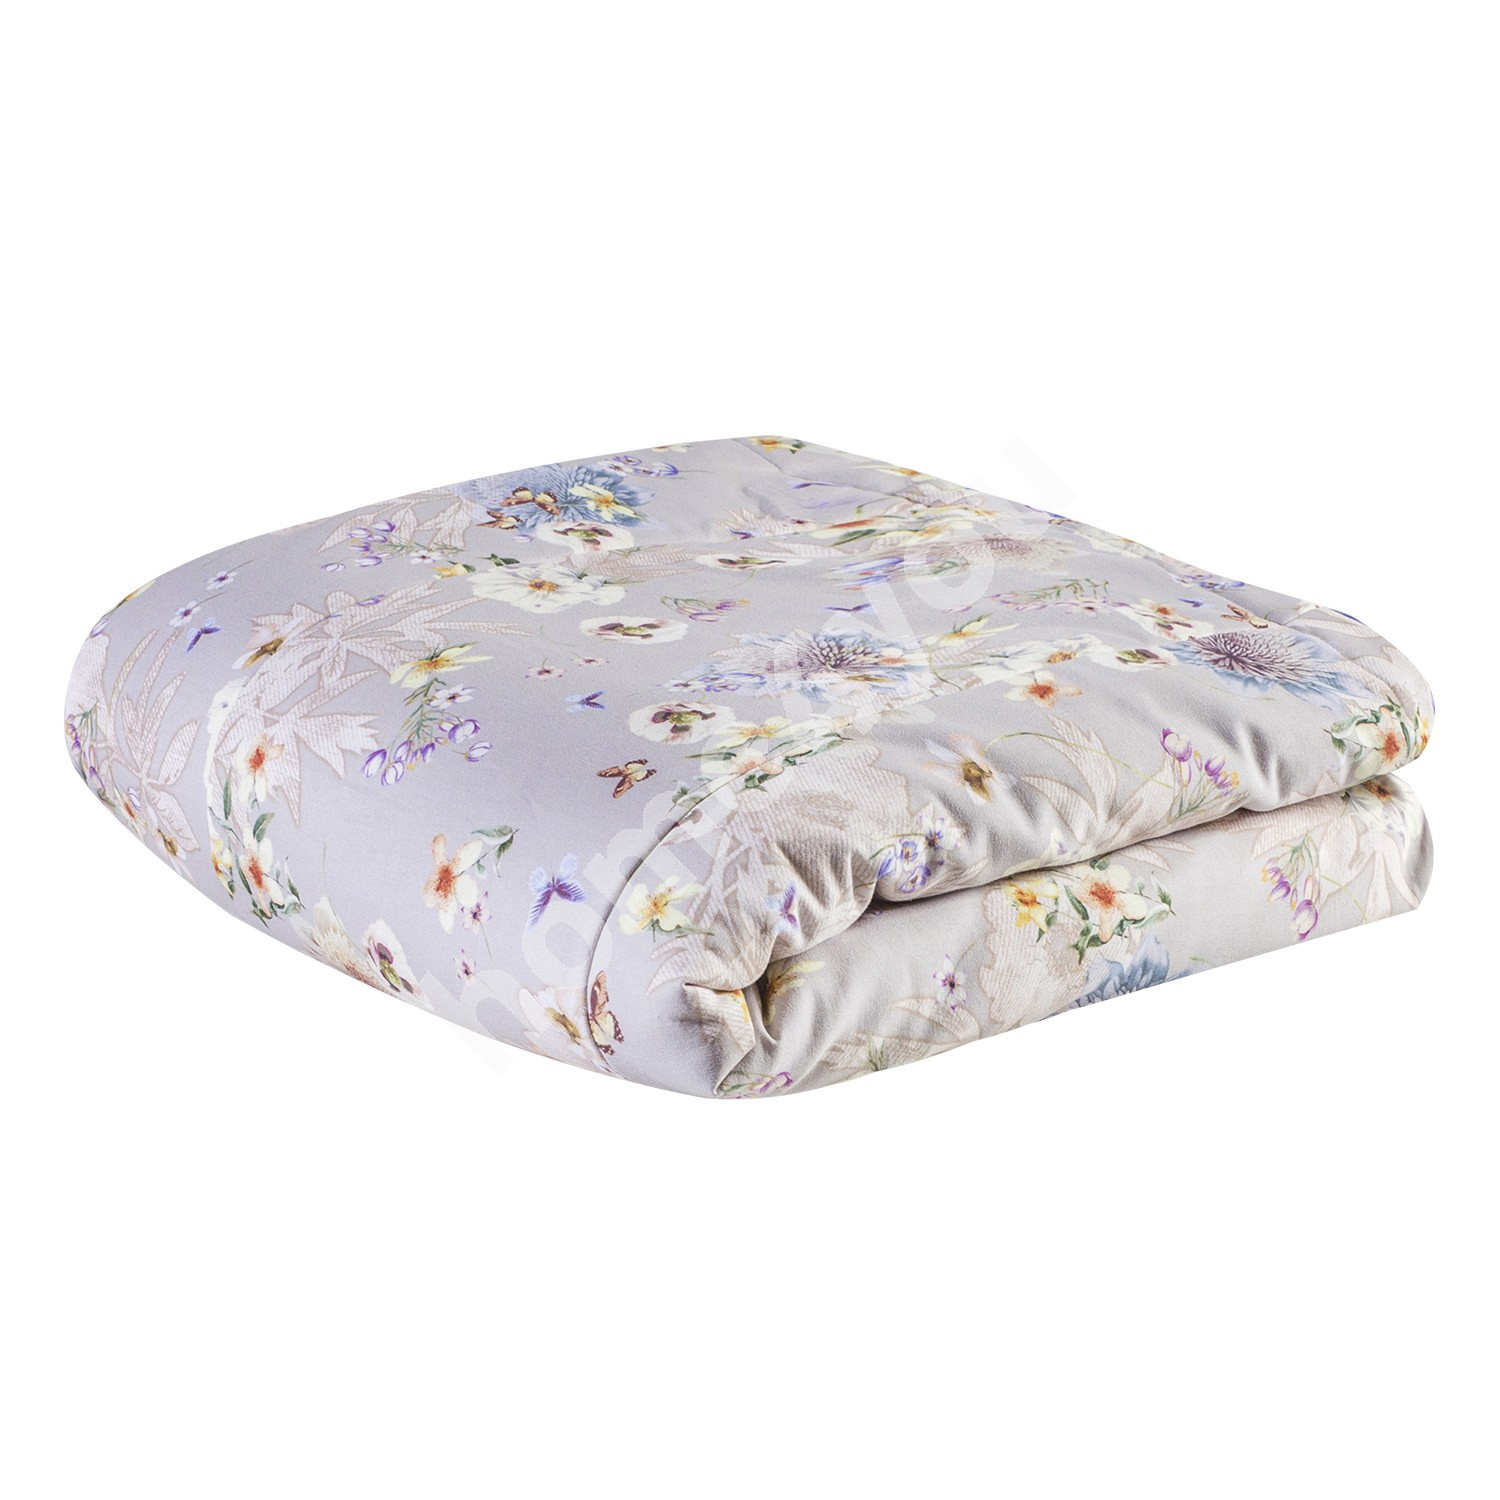 Blanket CLIVIA 225x240cm, flowers and butterflies, upper fabric 100%cotton, bottom fabric 100%polyester, fabric -223, 63